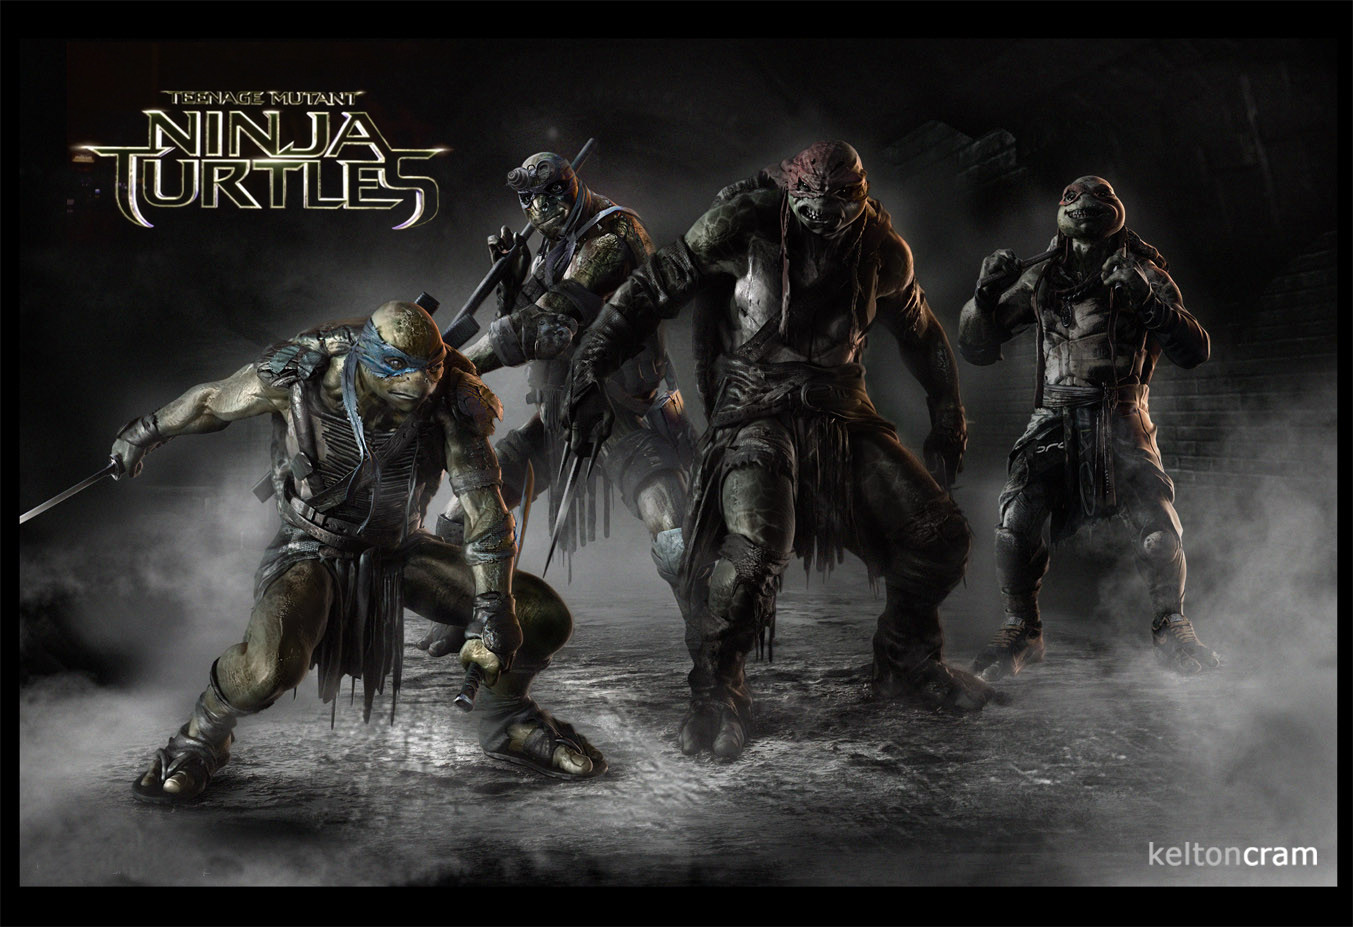 tmntcon4 See What Shredder and the Ninja Turtles Almost Looked Like In the New Movie